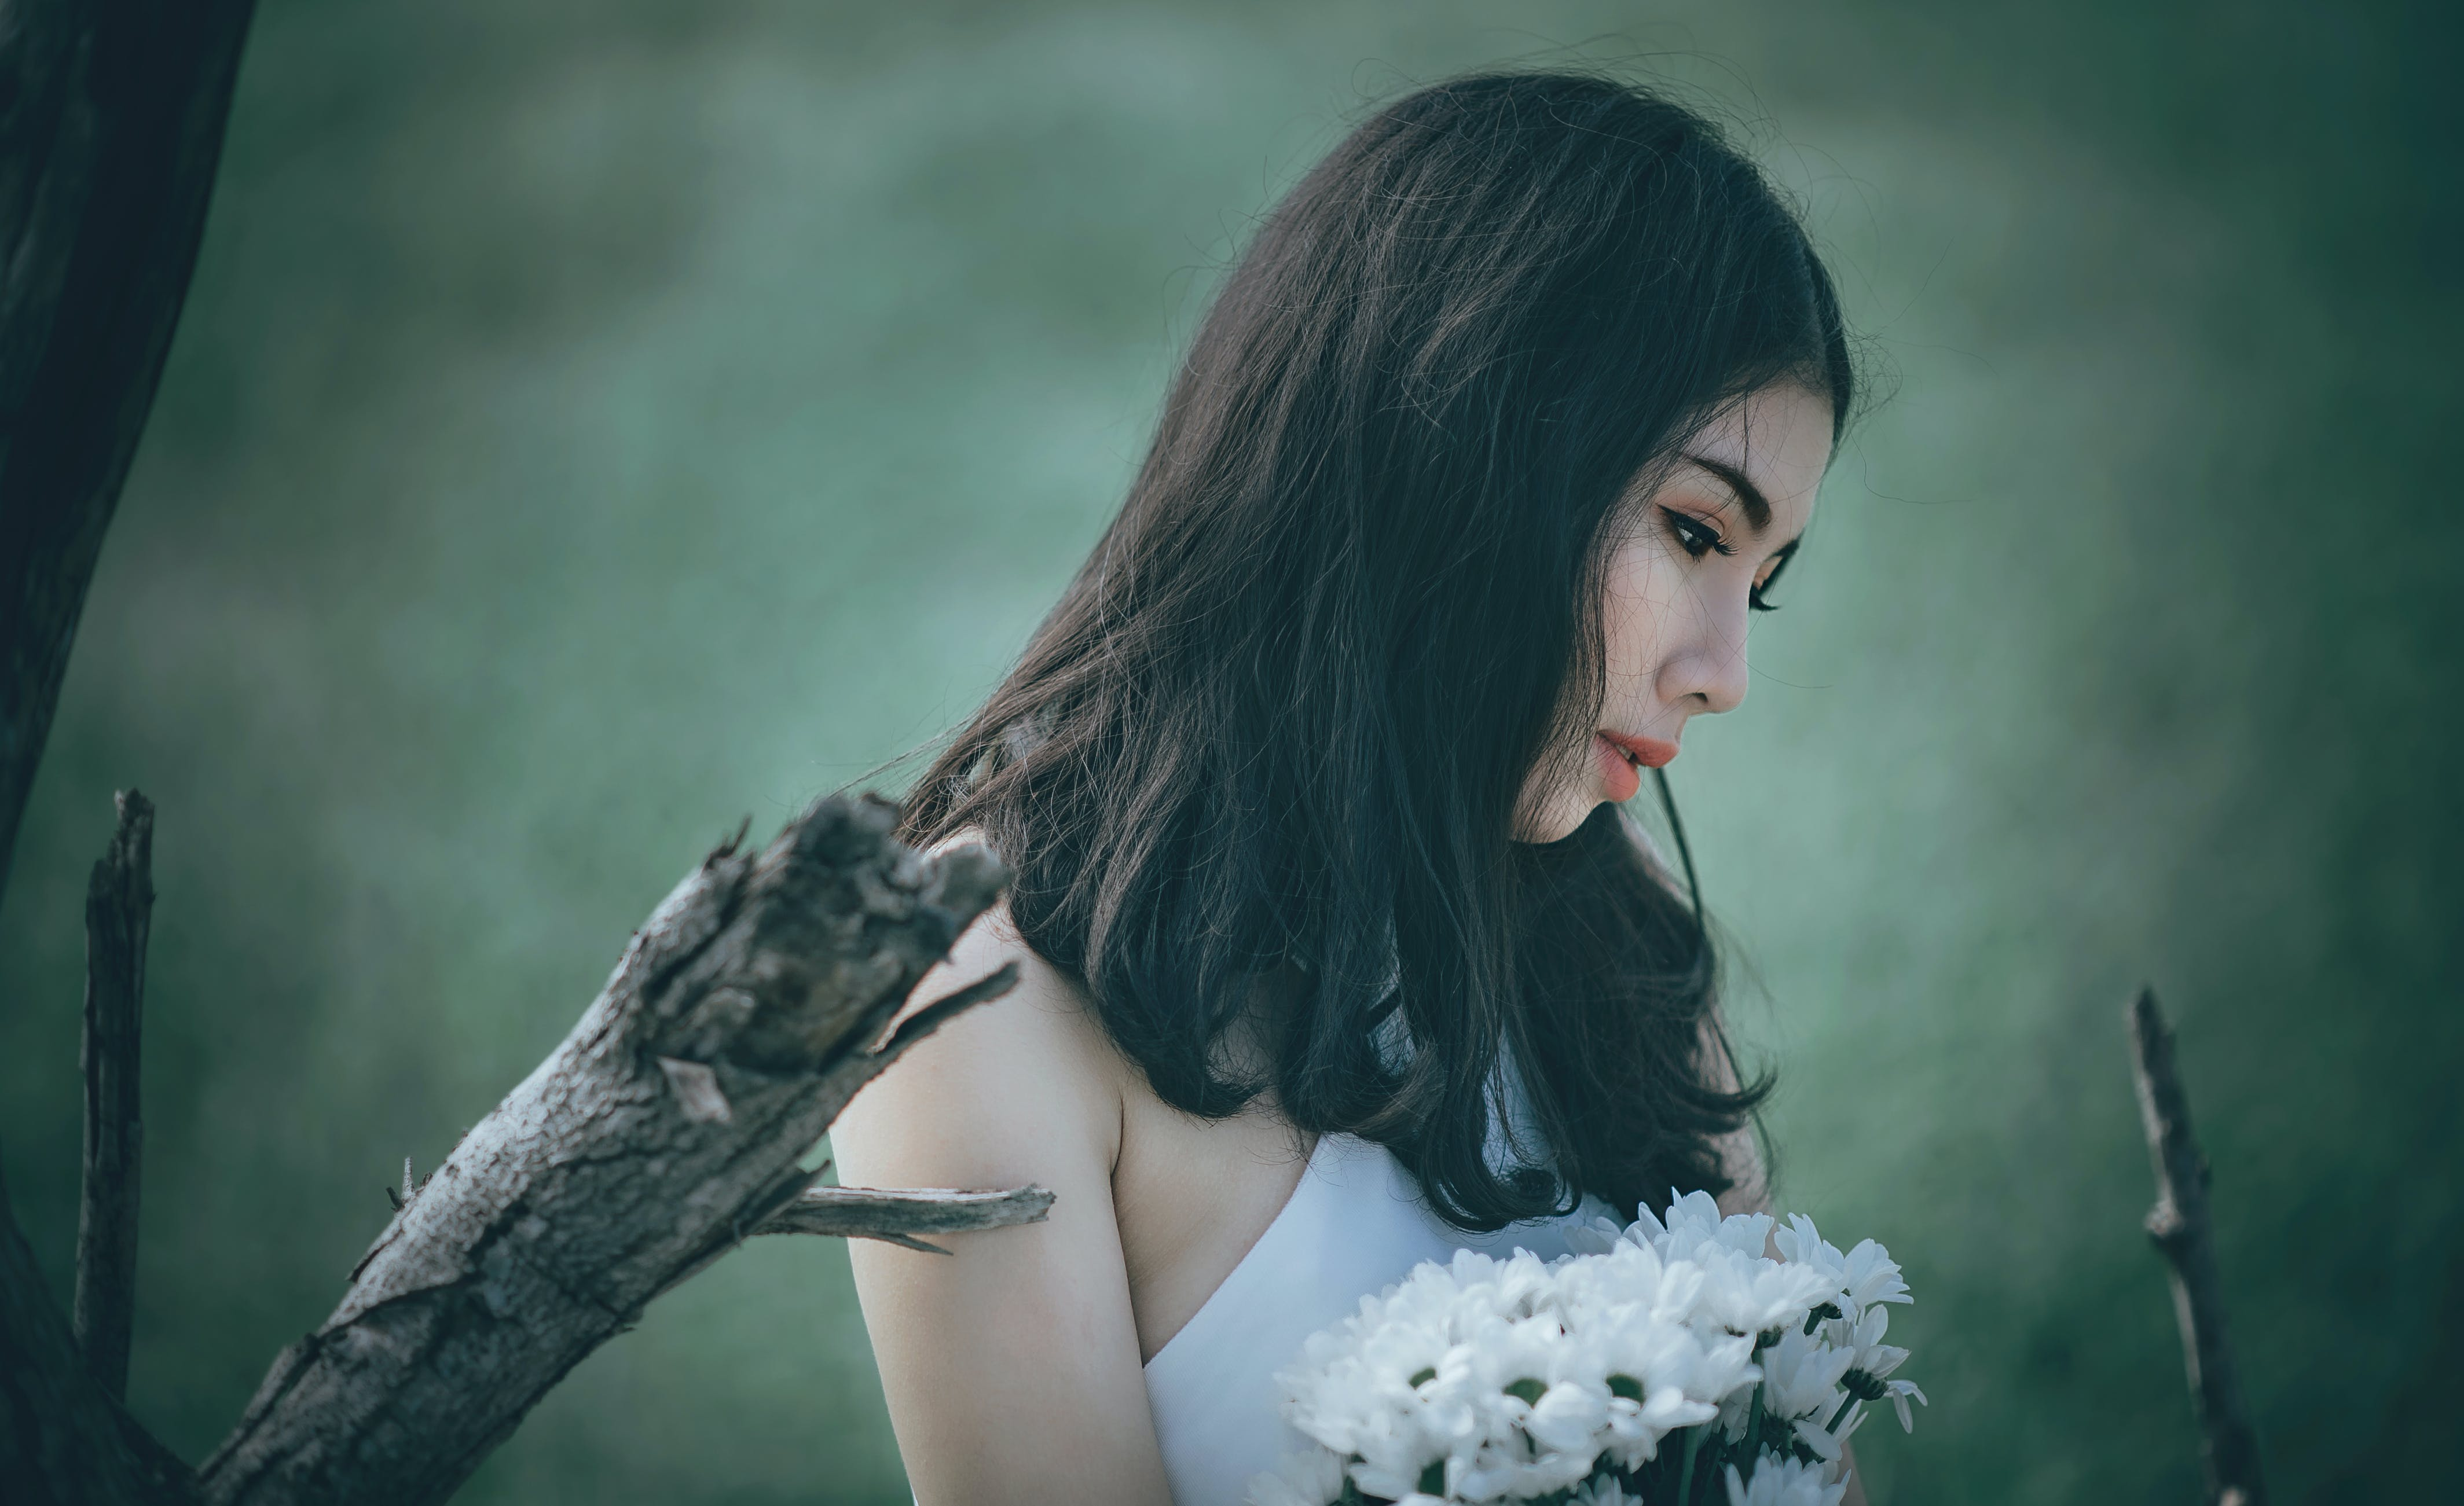 Woman in White Top Holding Bouquet of White Petaled Flowers While Looking Down